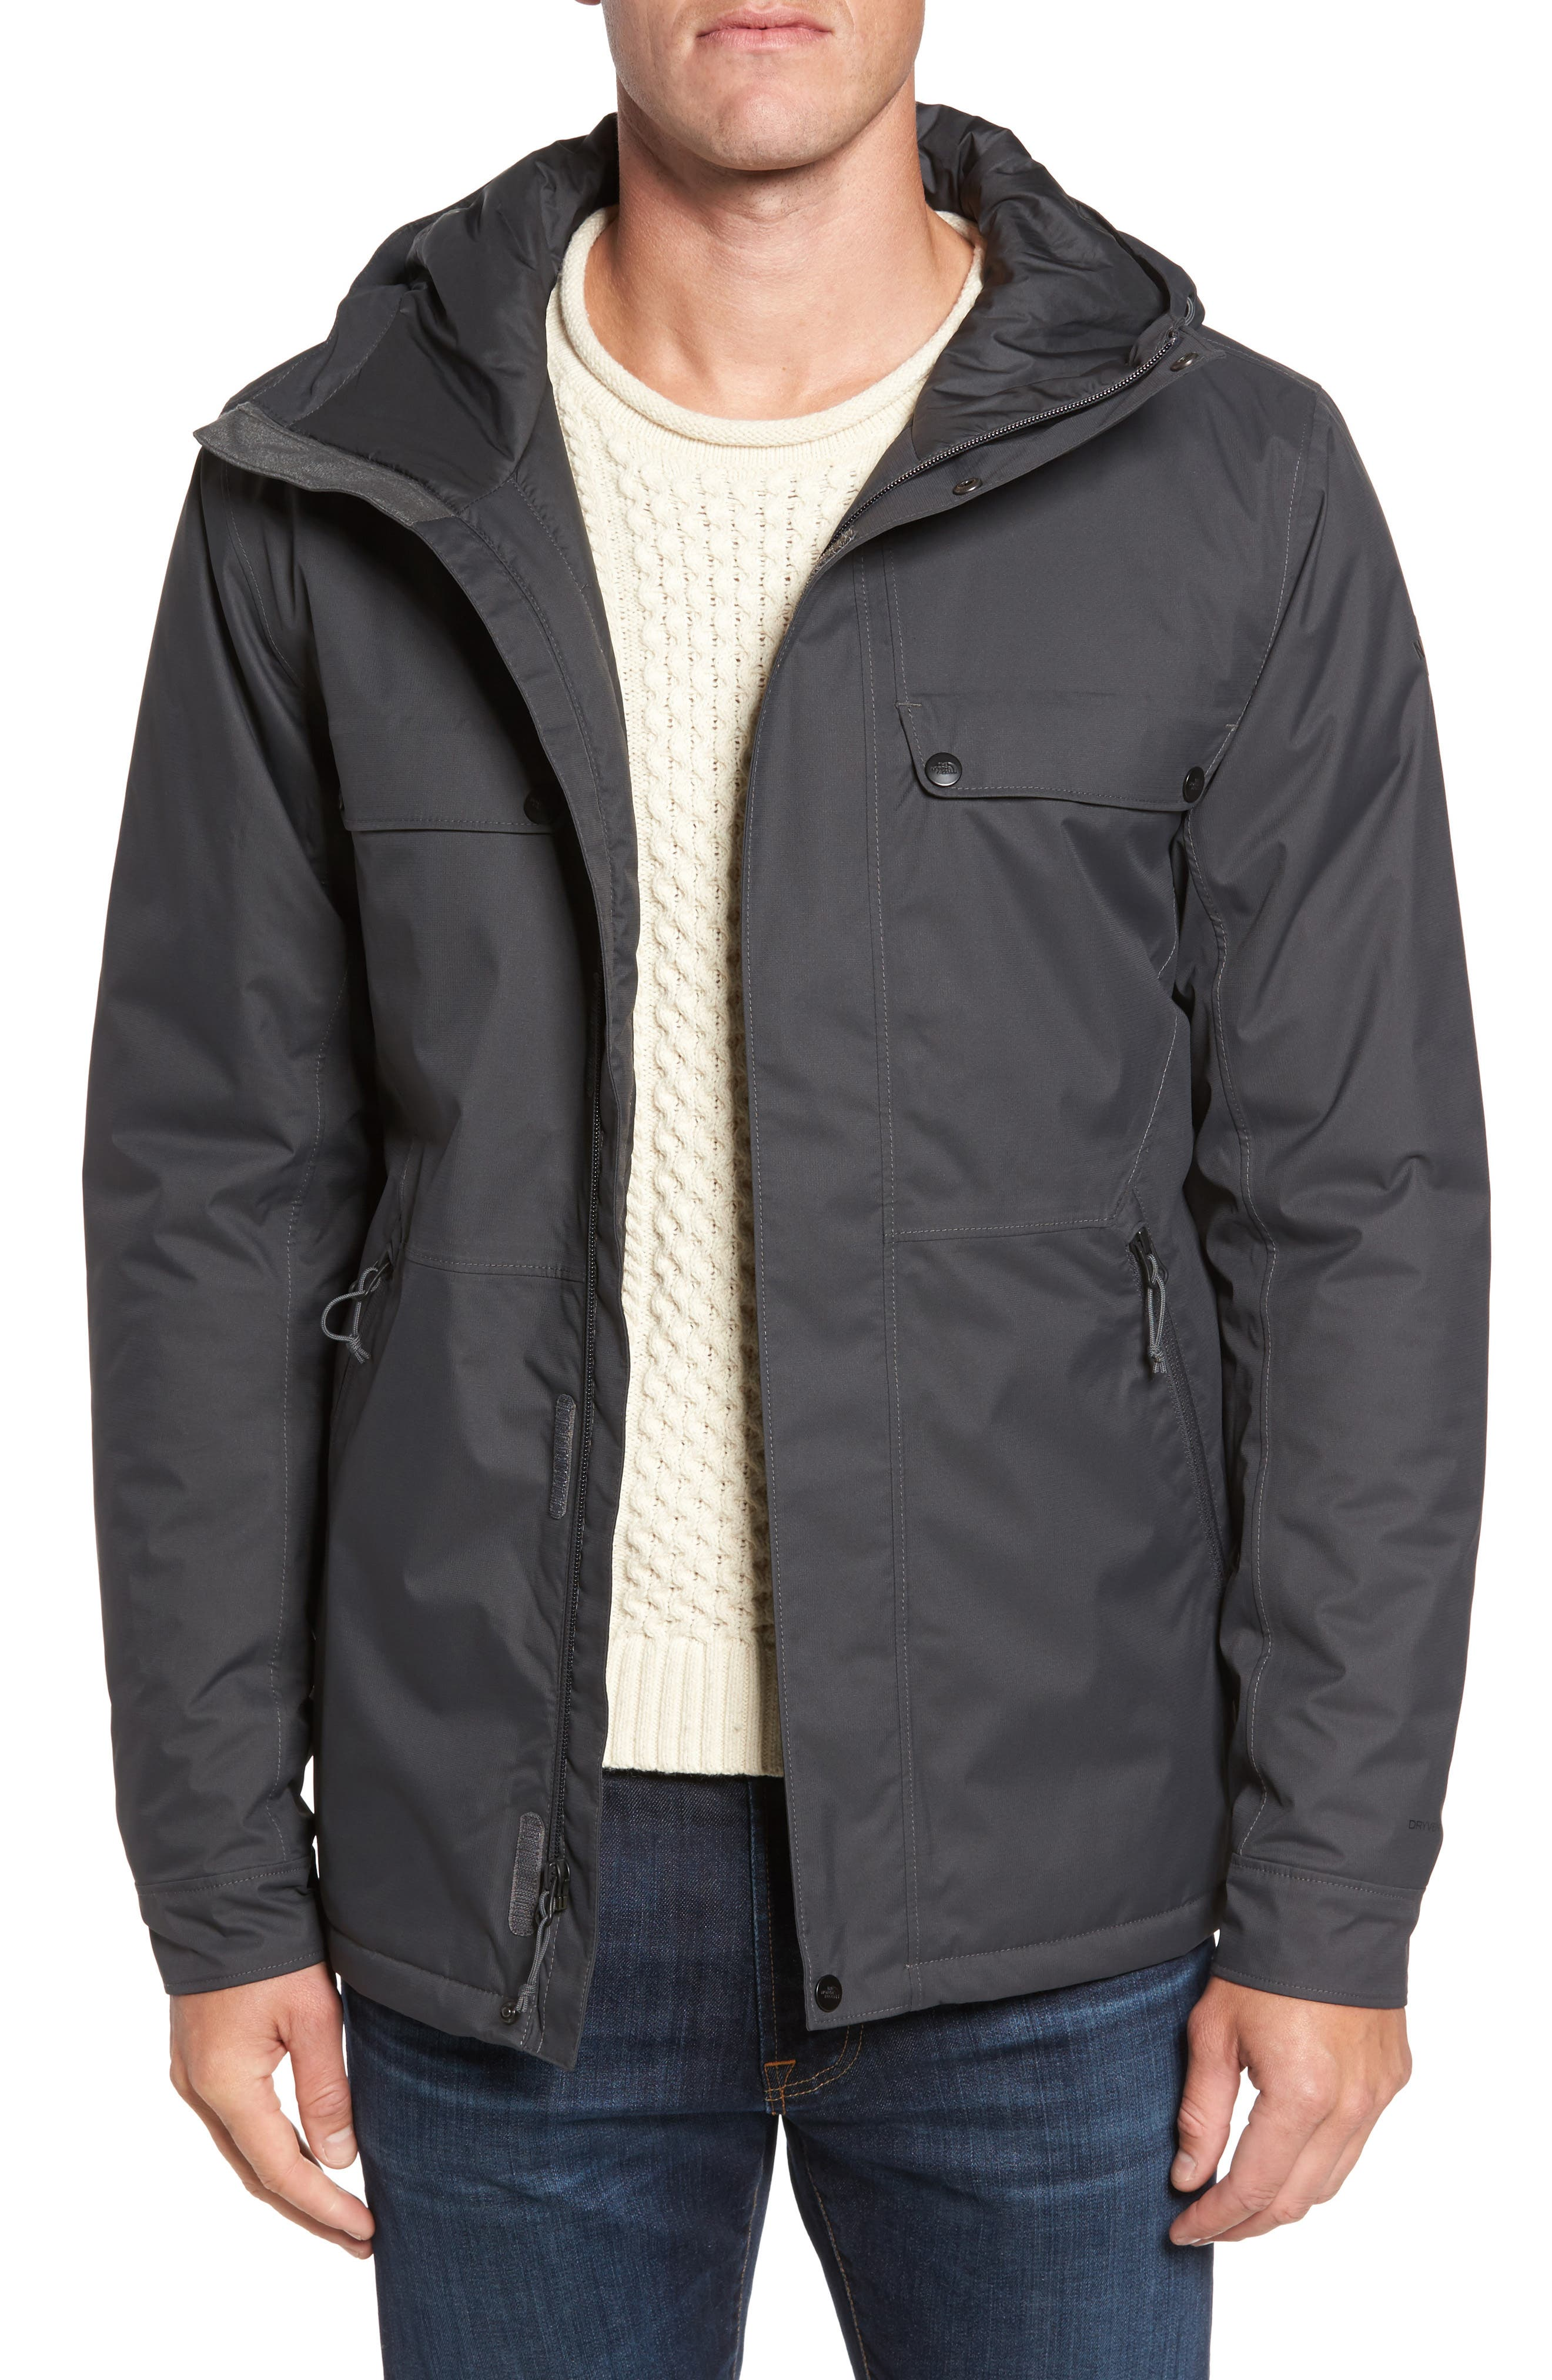 Main Image - The North Face Jenison Insulated Waterproof Jacket